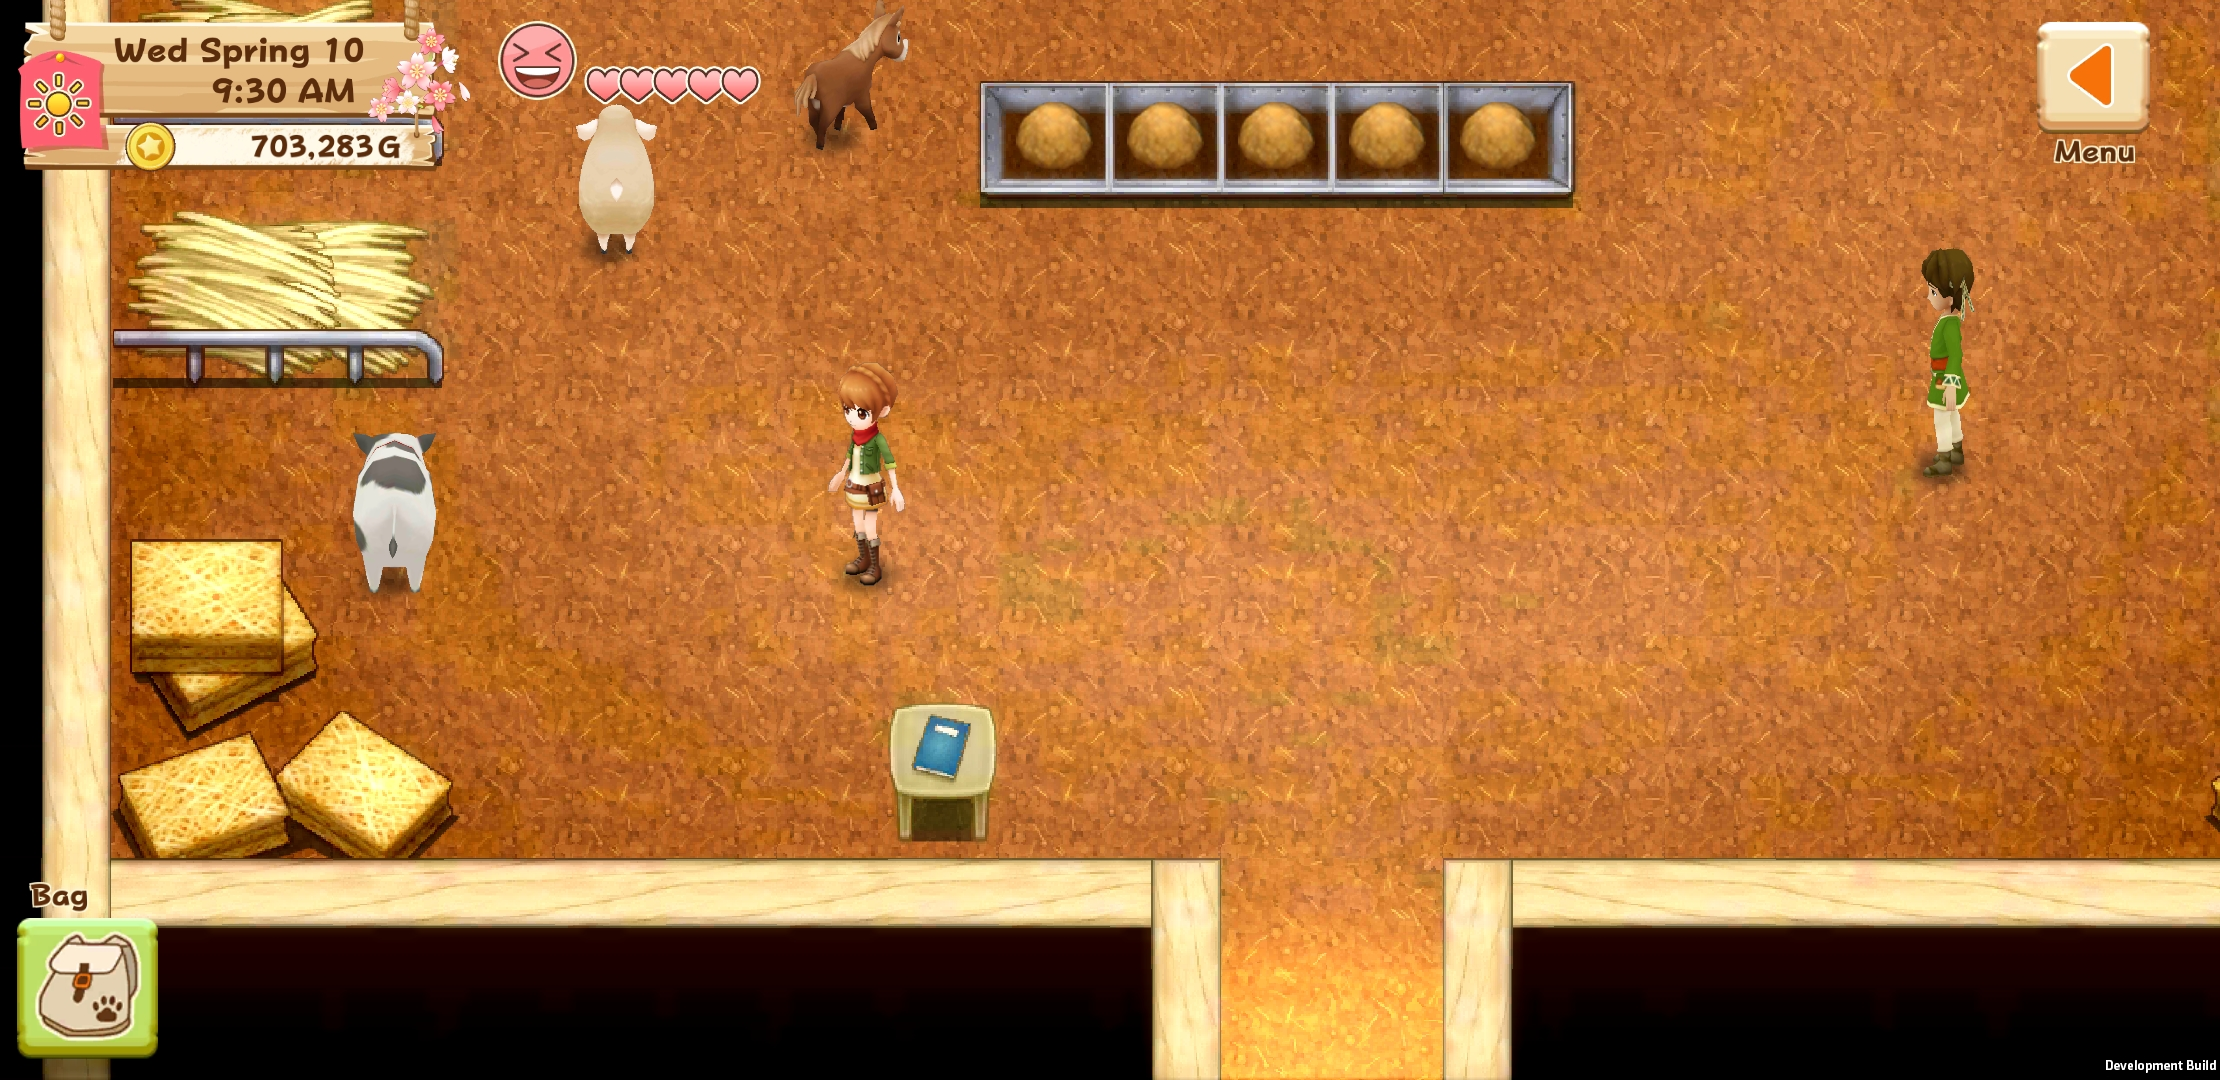 harvest-moon-light-of-hope-for-ios-android-coming-soon3-frikigamers.com.jpg